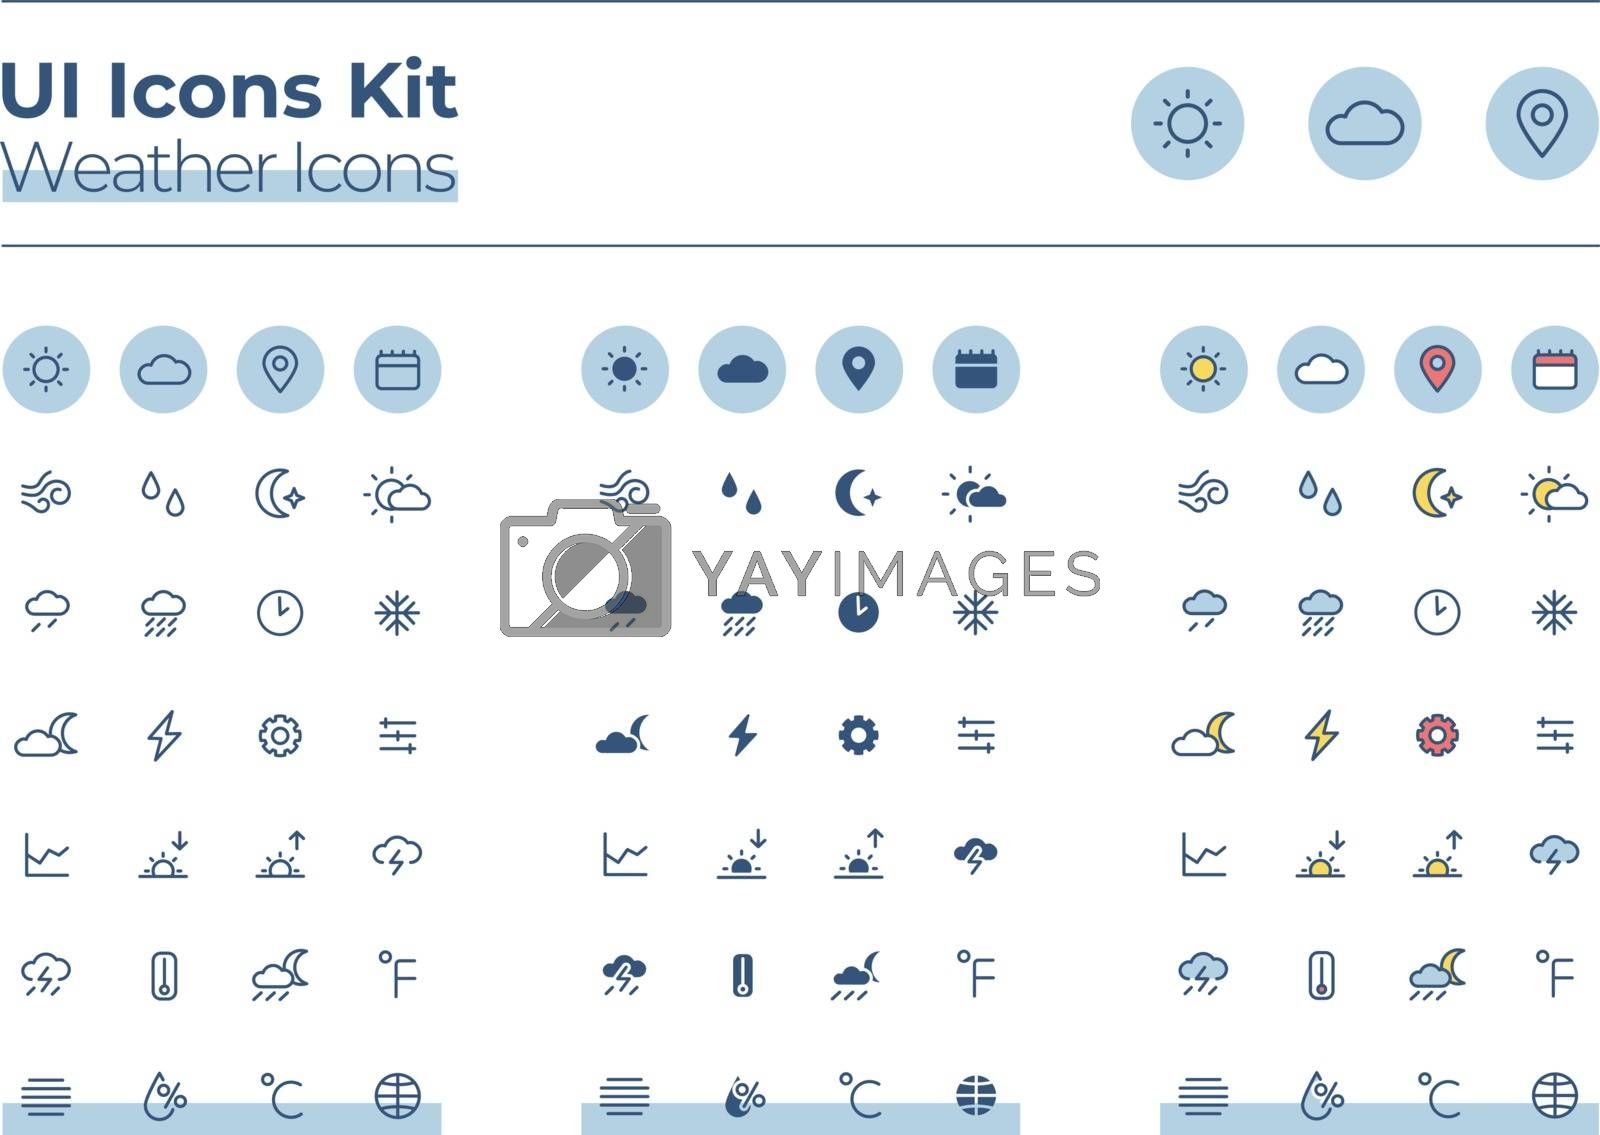 Weather UI icons kit. Forecast thin line, glyph and color vector symbols set. Sunny and cloudy. Warm, cold climate. Meteorology mobile app buttons in blue circles pack. Web design elements collection